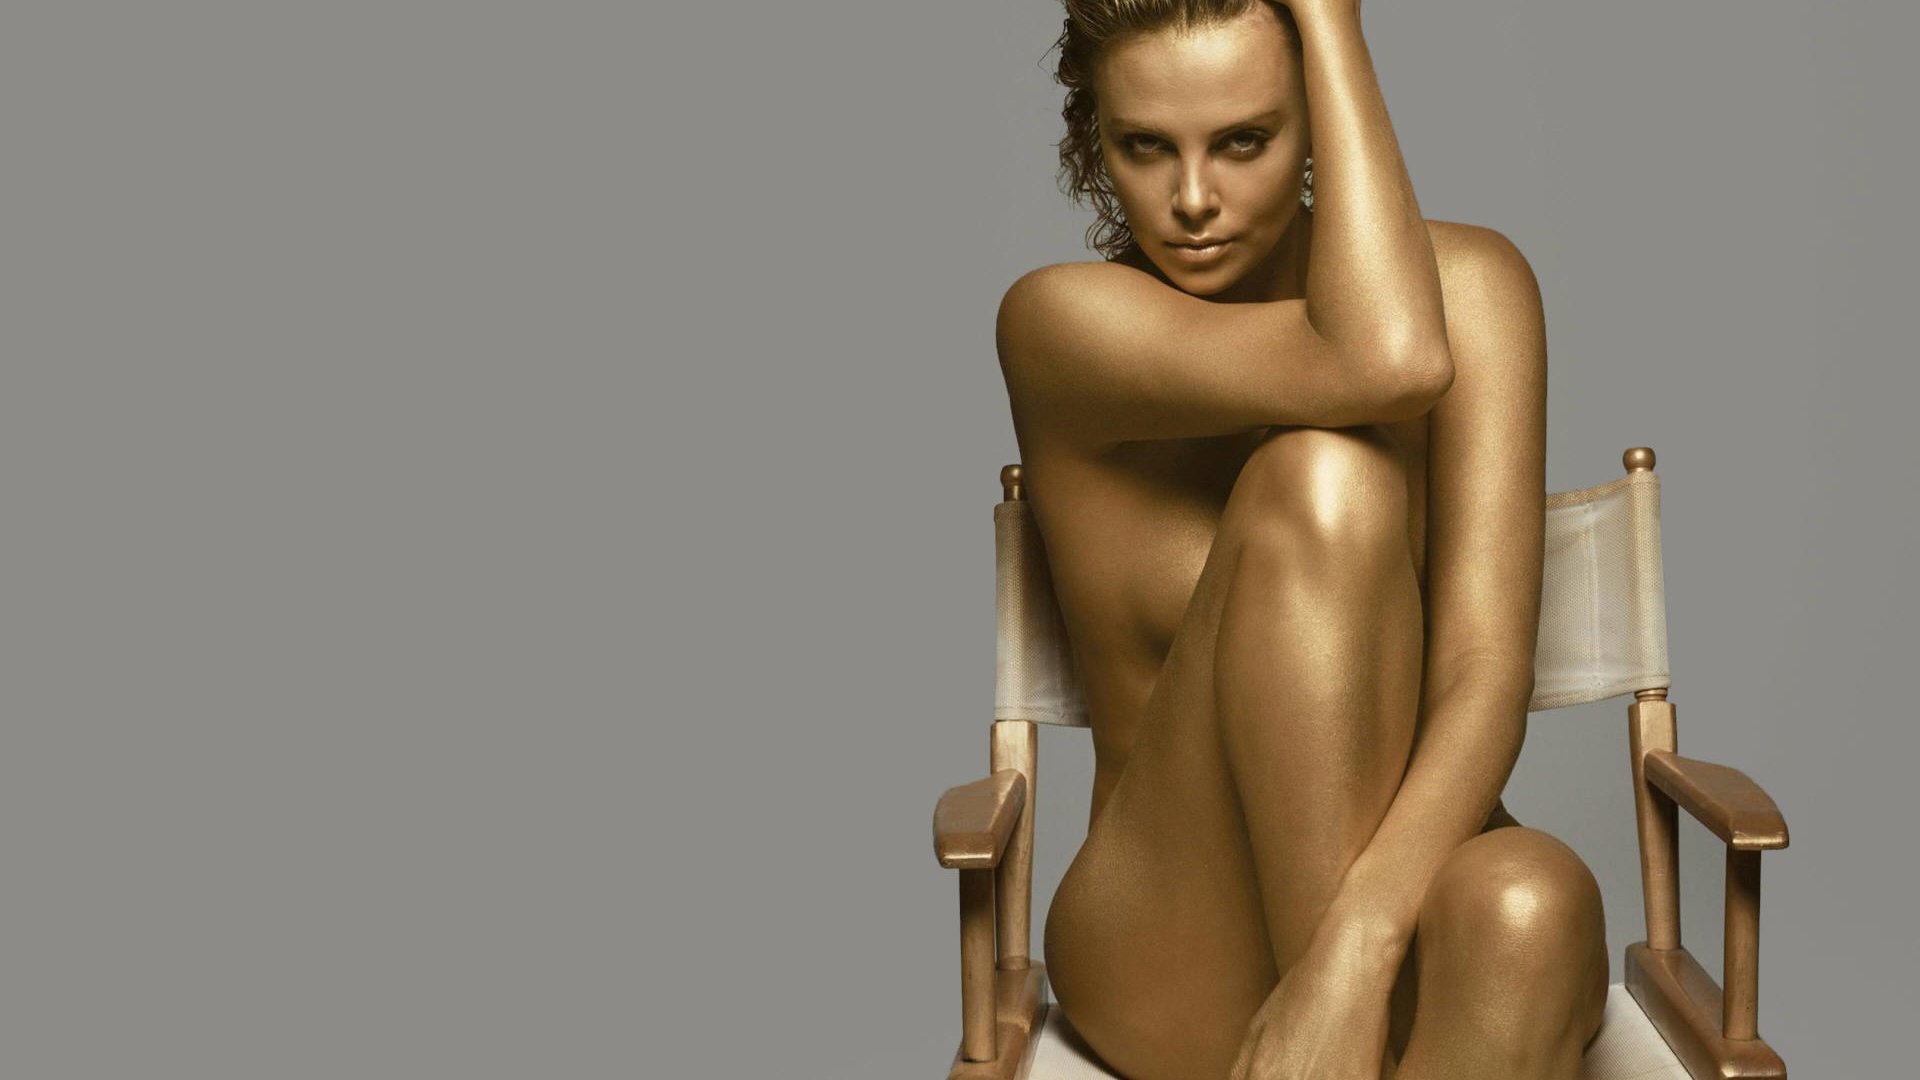 Charlize theron nude photos naked sex pics